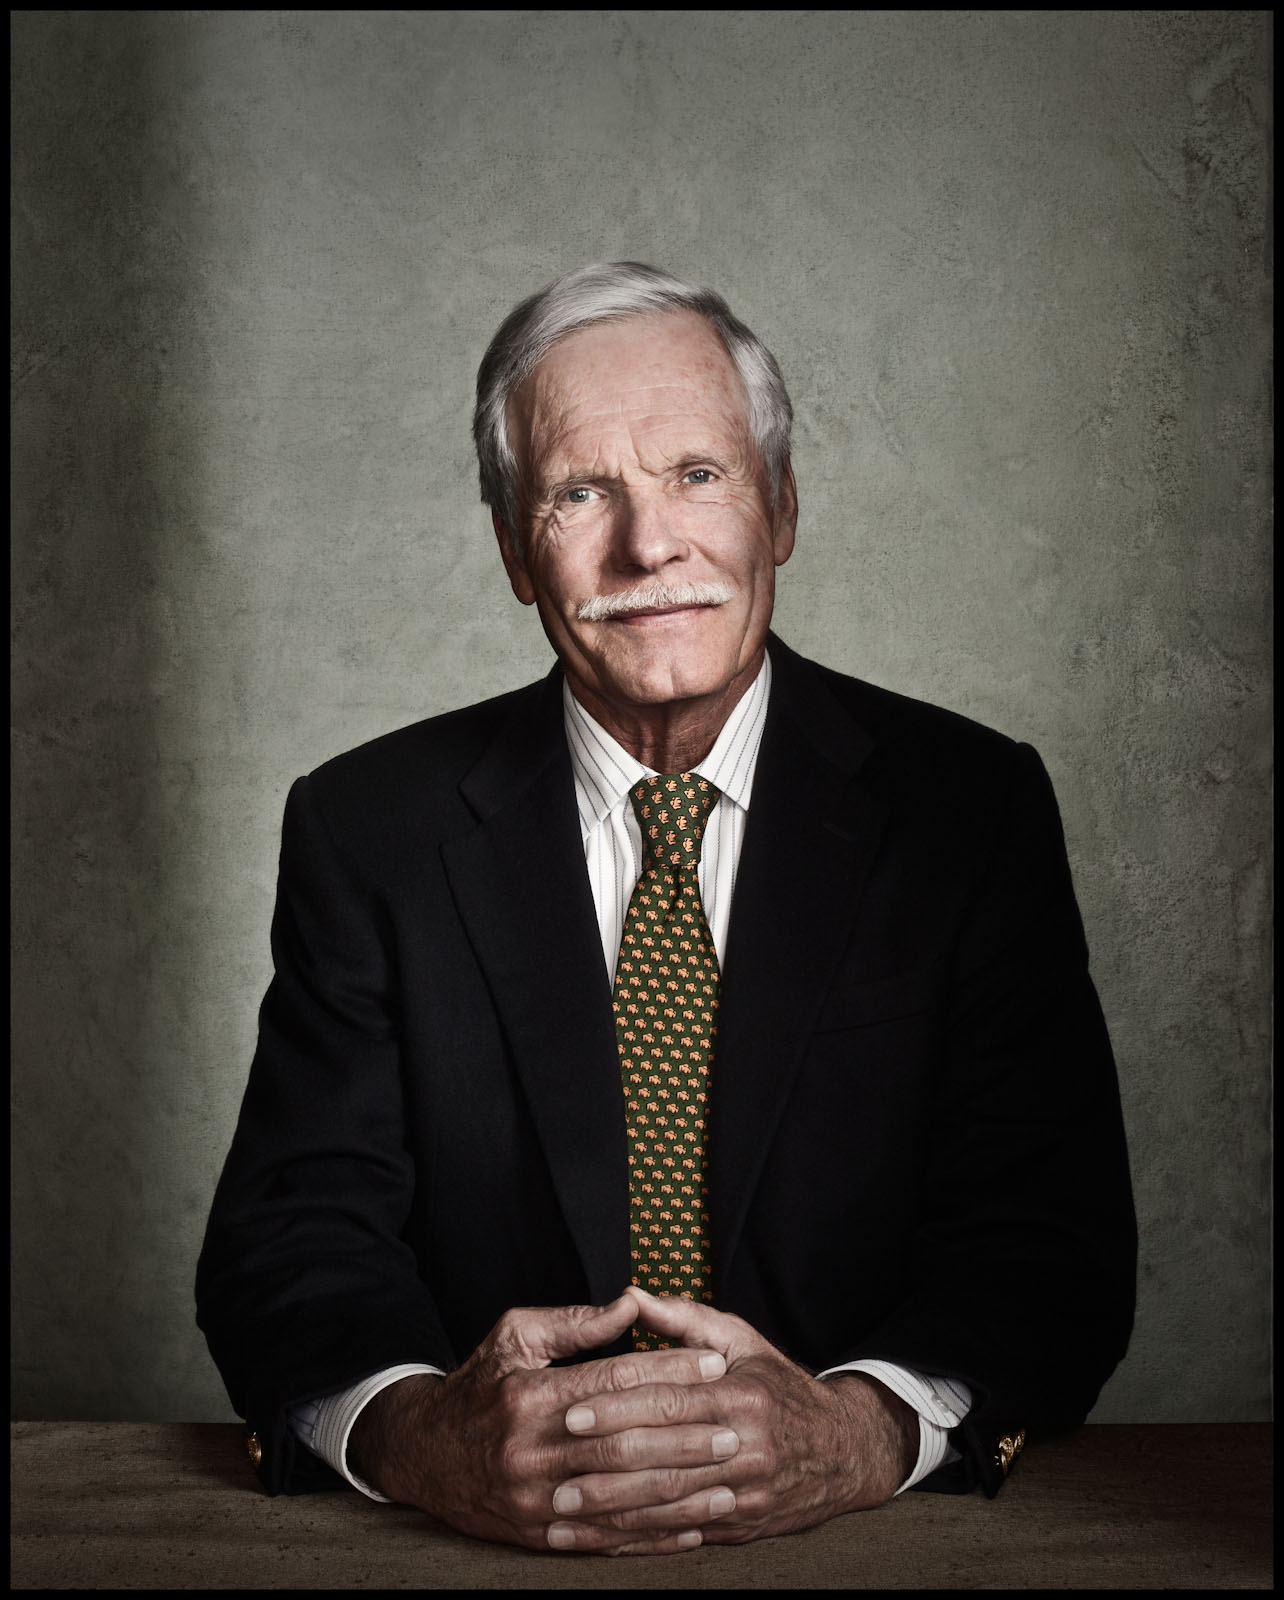 Ted Turner - Atlanta, GA - Atlanta Magazine